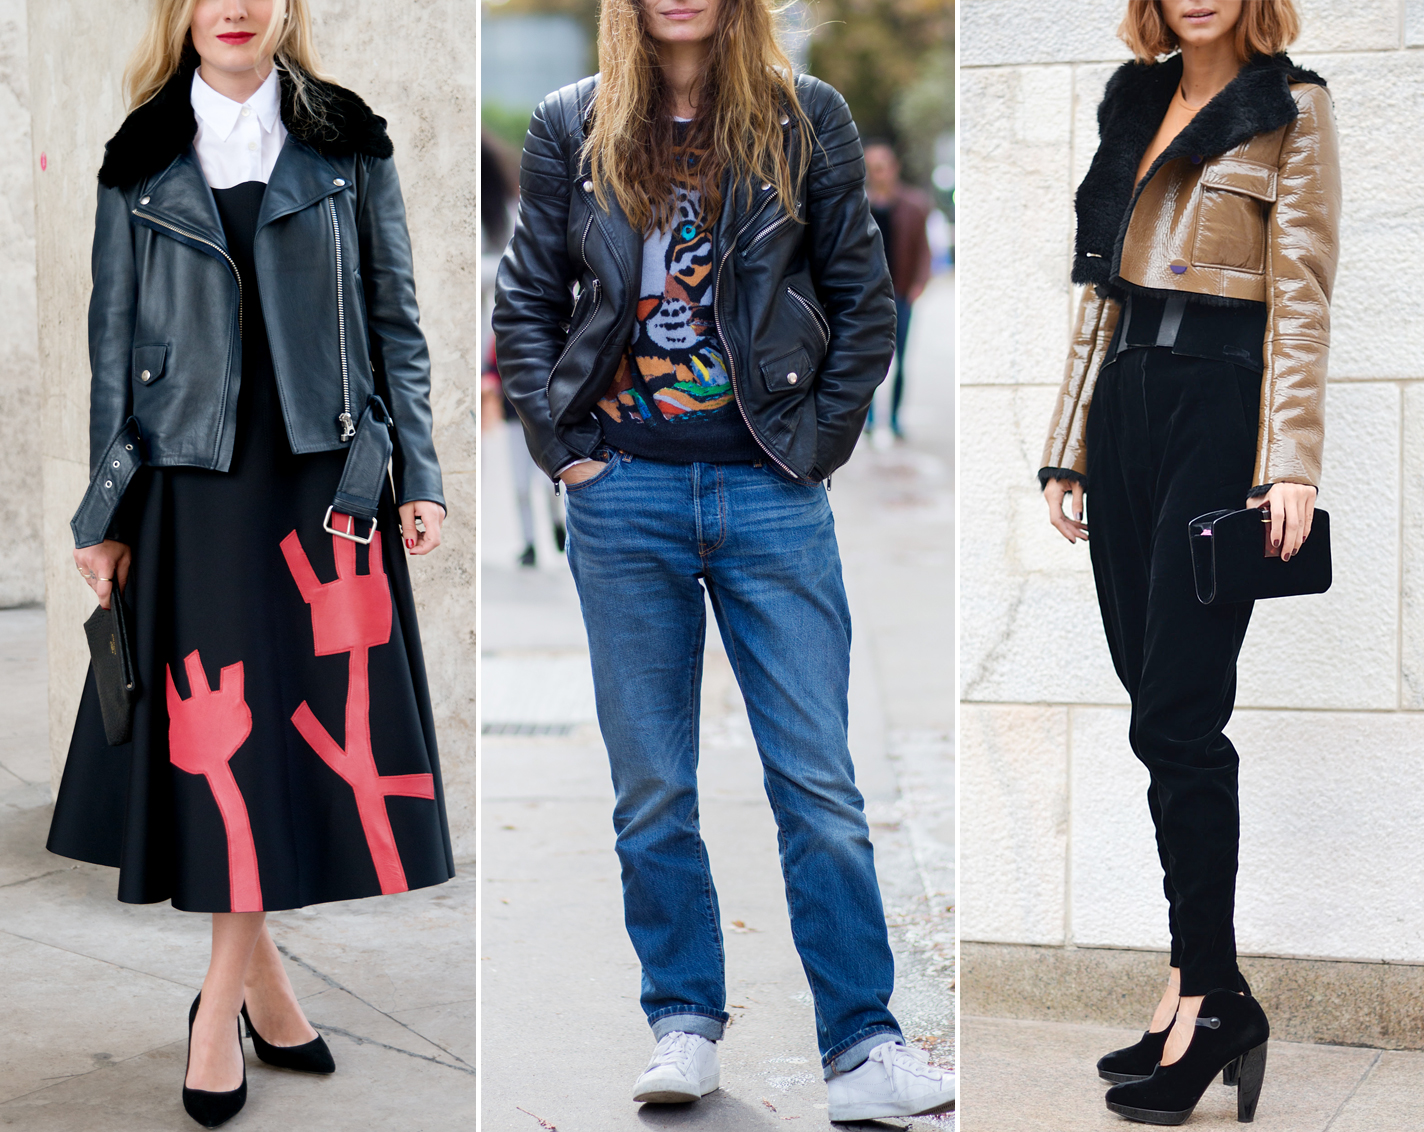 How to Wear a Leather Jacket | InStyle.com